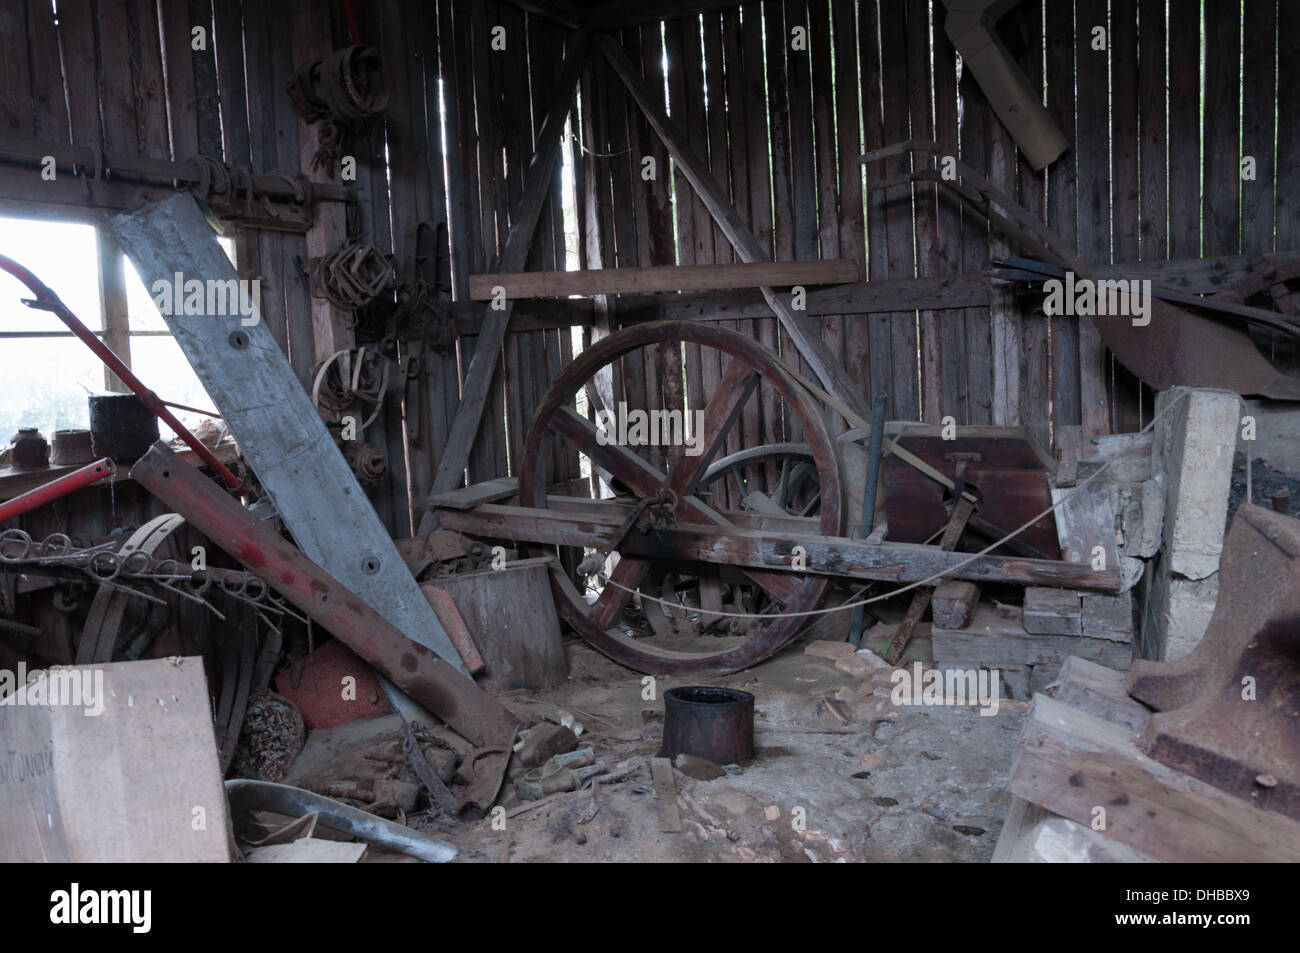 photos from an abandoned forge in Finland - Stock Image